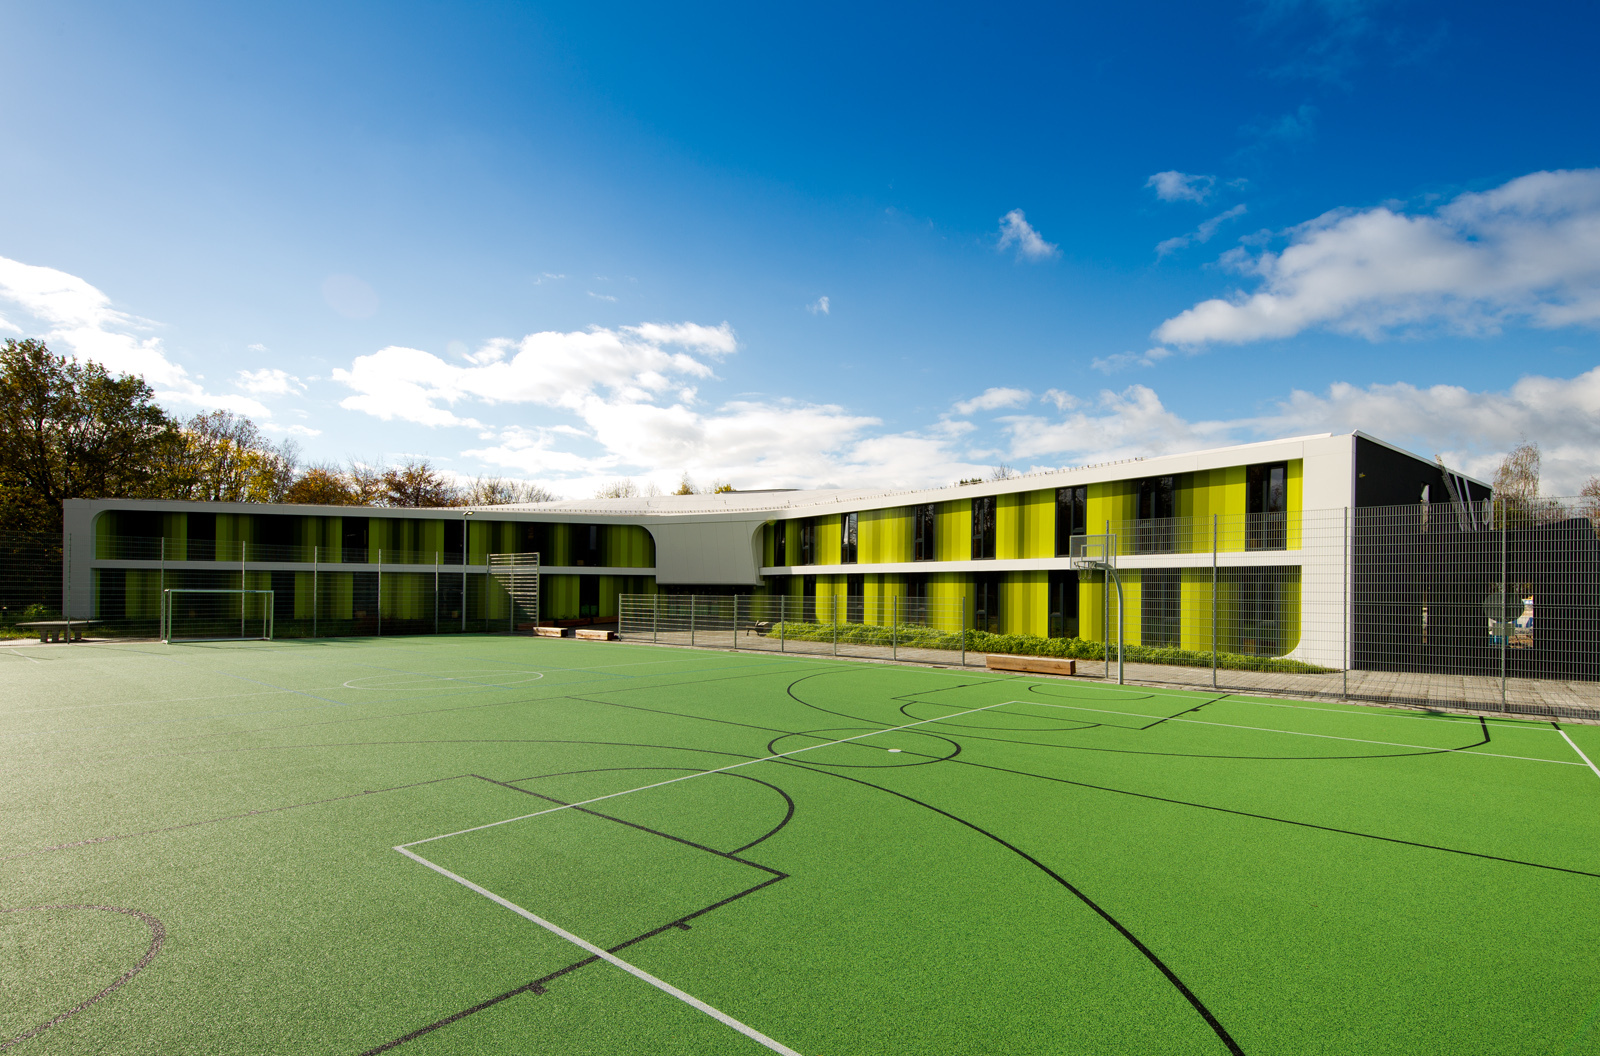 Sports Youth Hostel / LAVA & WENZEL + WENZEL   ArchDaily